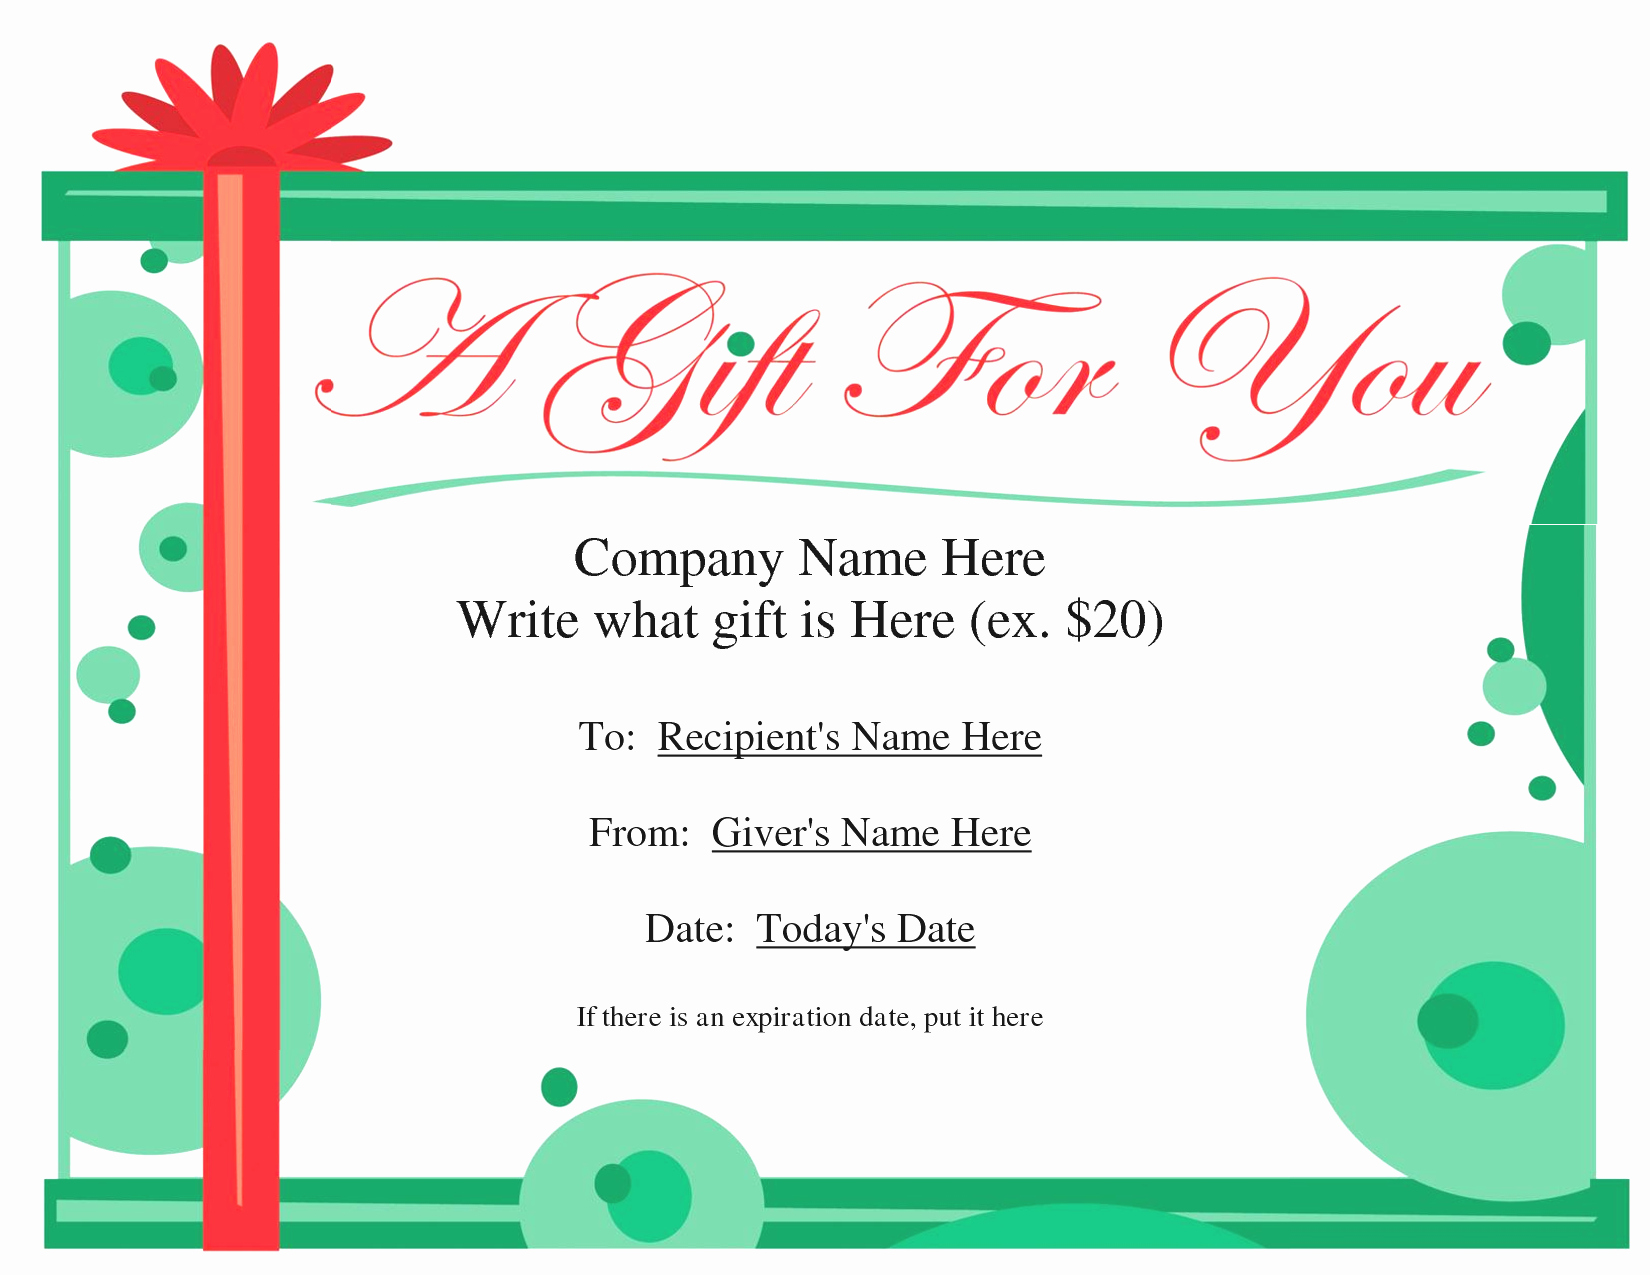 Gift Certificate Template Microsoft Word Beautiful Microsoft Fice Gift Certificate Template